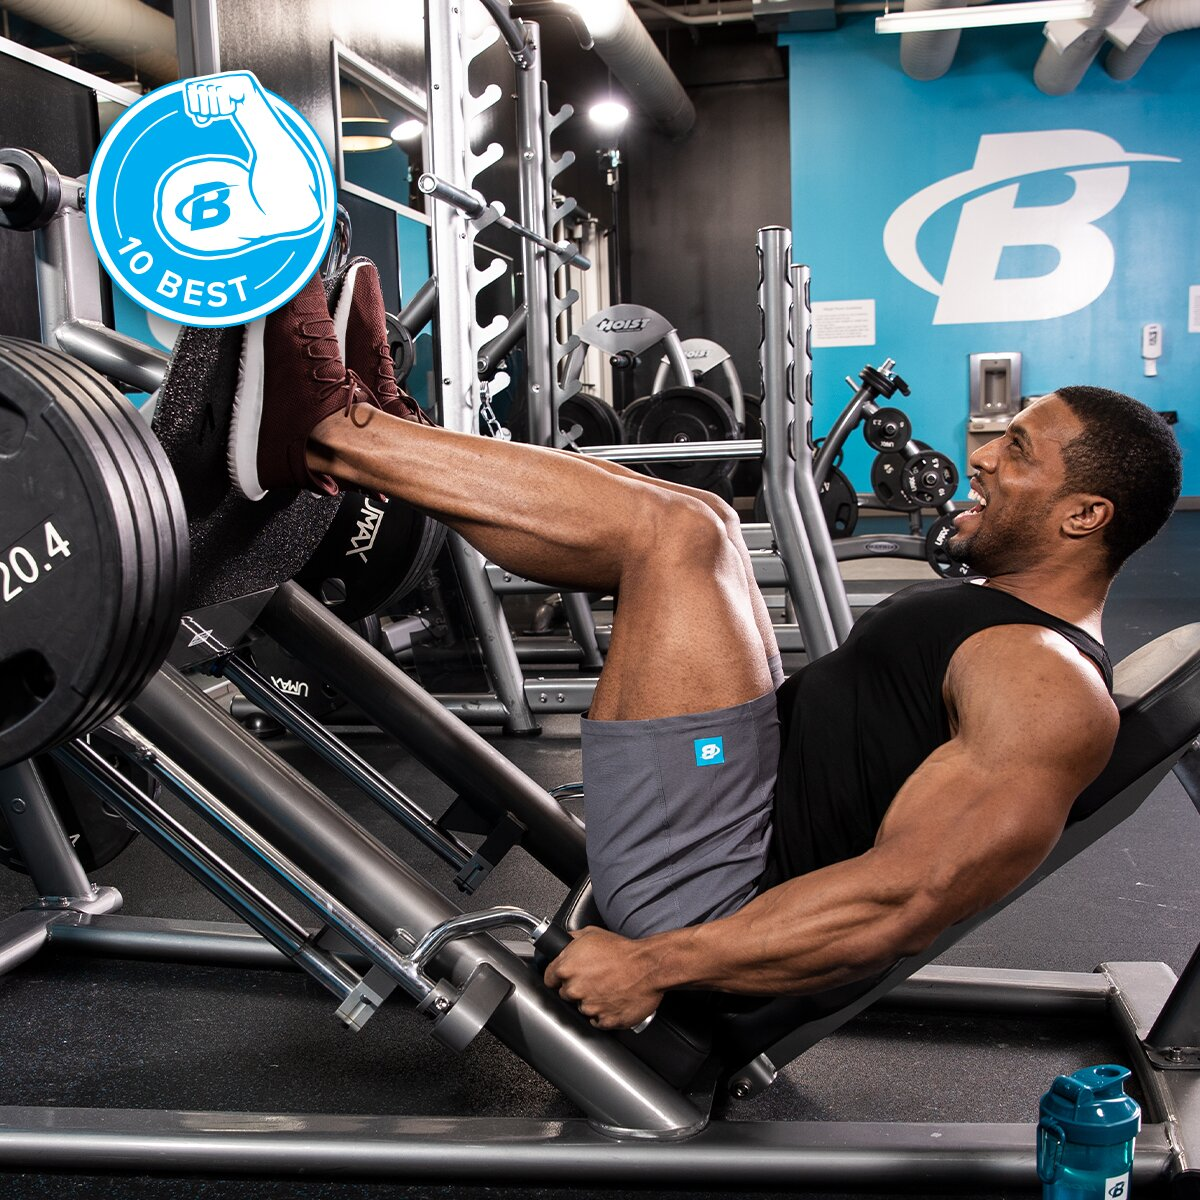 10 Best Leg Exercises for Building Muscle